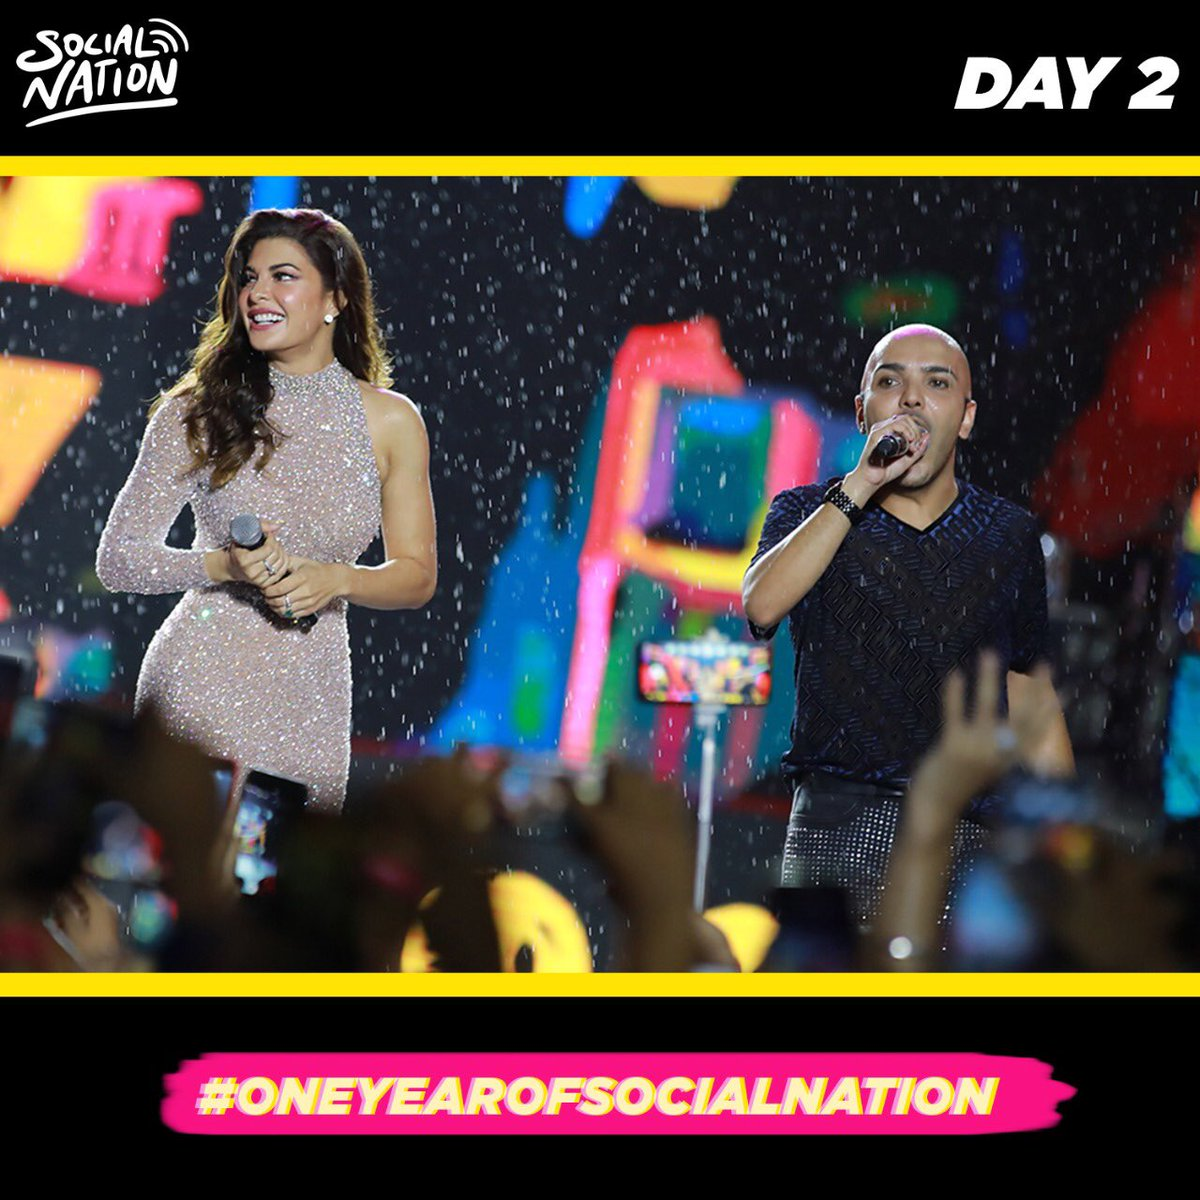 Let's just take a moment and relive this day again✨💛  We don't know about you but we definitely are missing this day and you guys🥺 @shaanmuofficial @Asli_Jacqueline @CarryMinati @jasleenroyal #DhanashreeVerma   #oneyearofsocialnation #whereibelong #socialnation